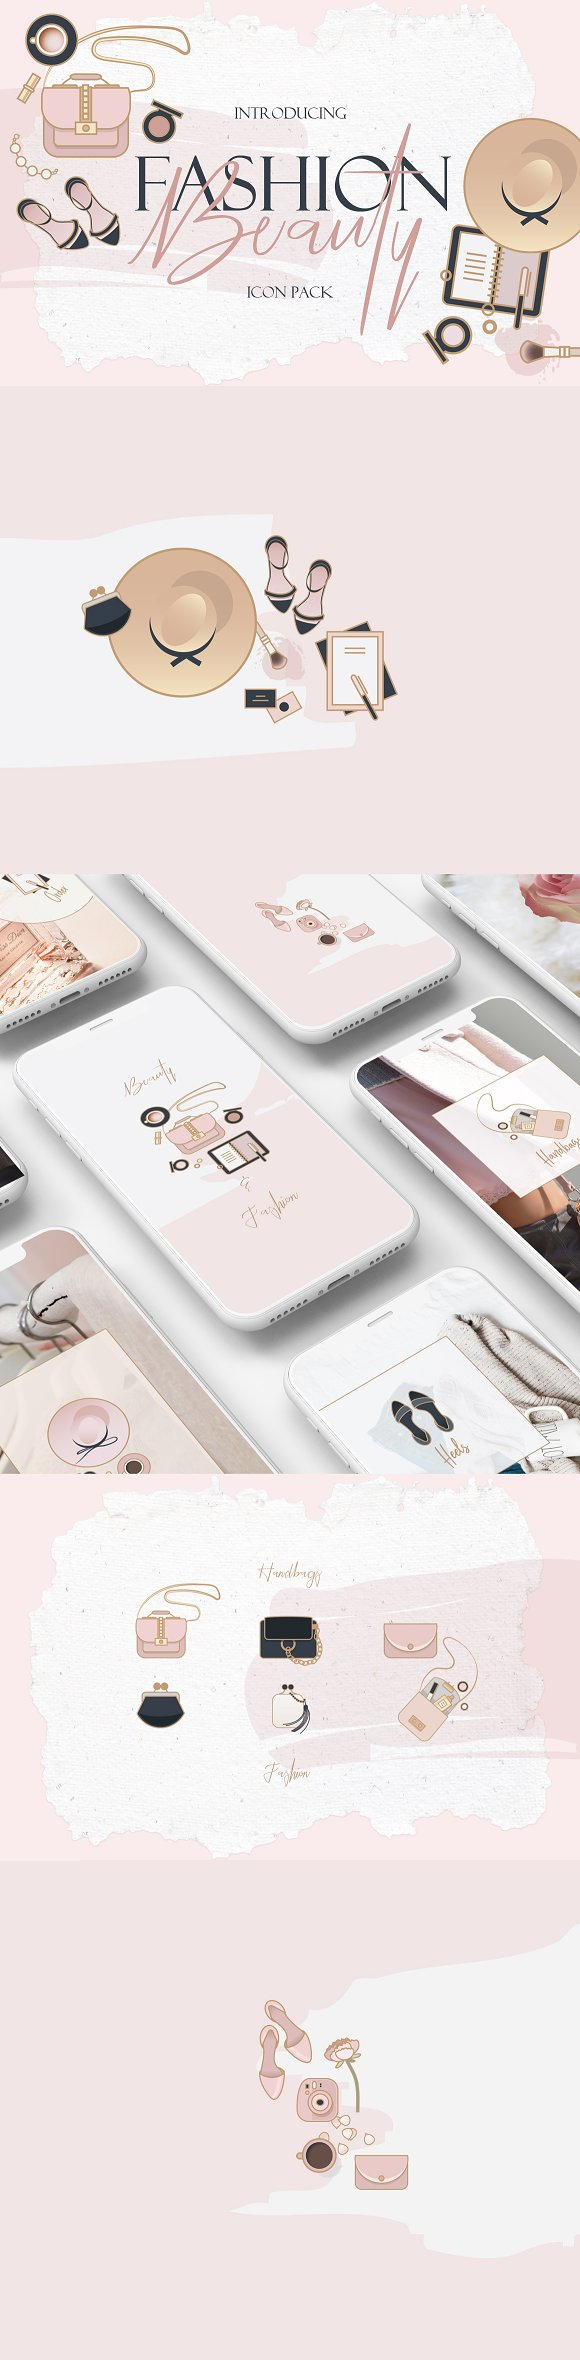 Beauty Fashion Icon Pack